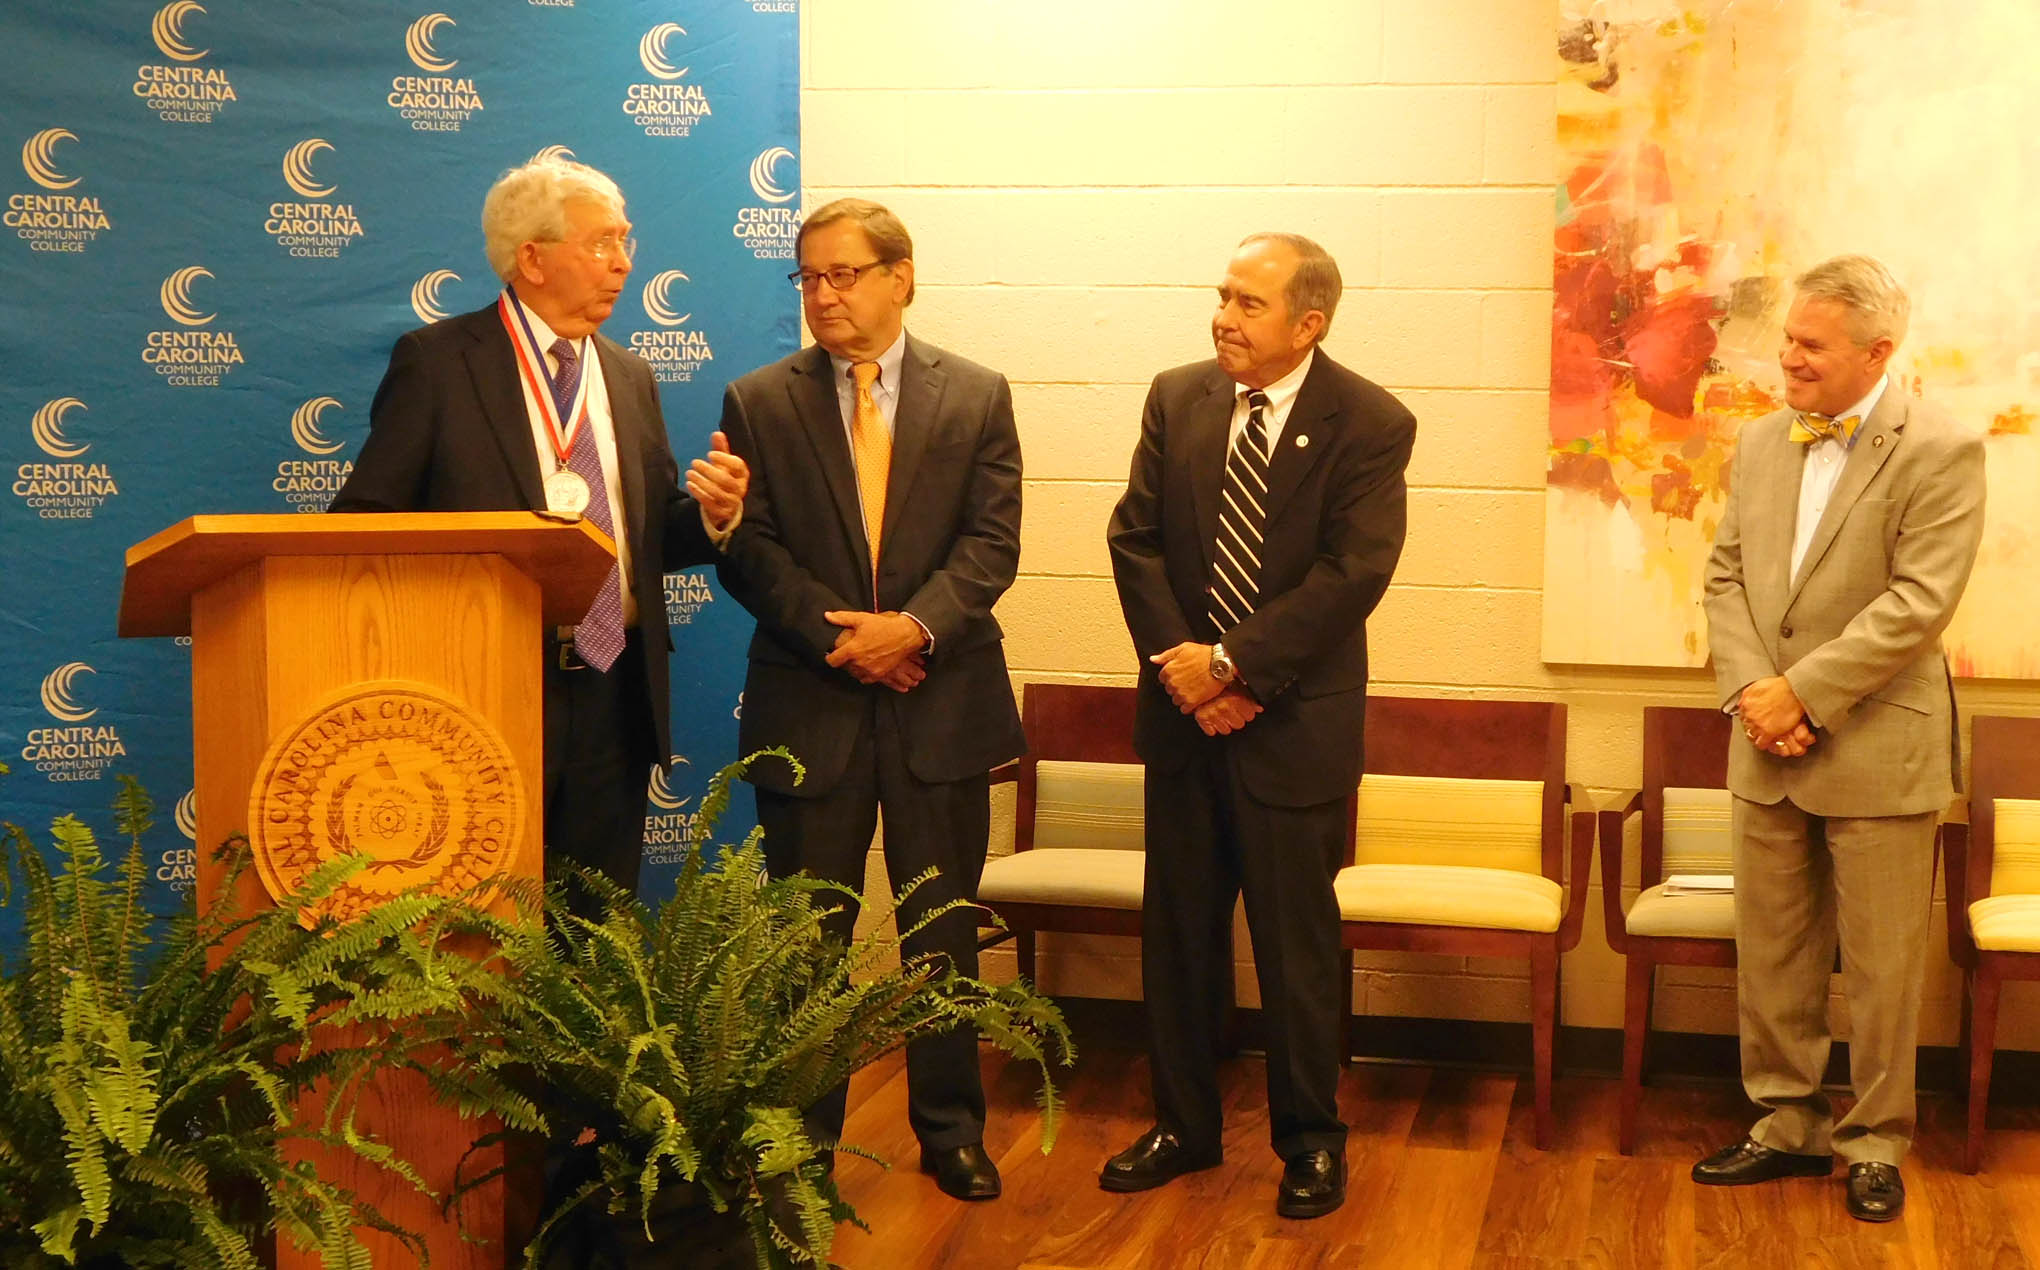 Click to enlarge,  Dr. J.F. Hockaday (far left), the latest recipient of the I.E. Ready Award, the highest honor bestowed by the State Board of Community Colleges, visits with (left to right) Dr. Donny Hunter, President and CEO of the N.C. Association of Community College Trustees; Dr. Ronald Lingle, President Emeritus of Coastal Carolina Community College; and Dr. James C. Williamson, President of the North Carolina Community College System.